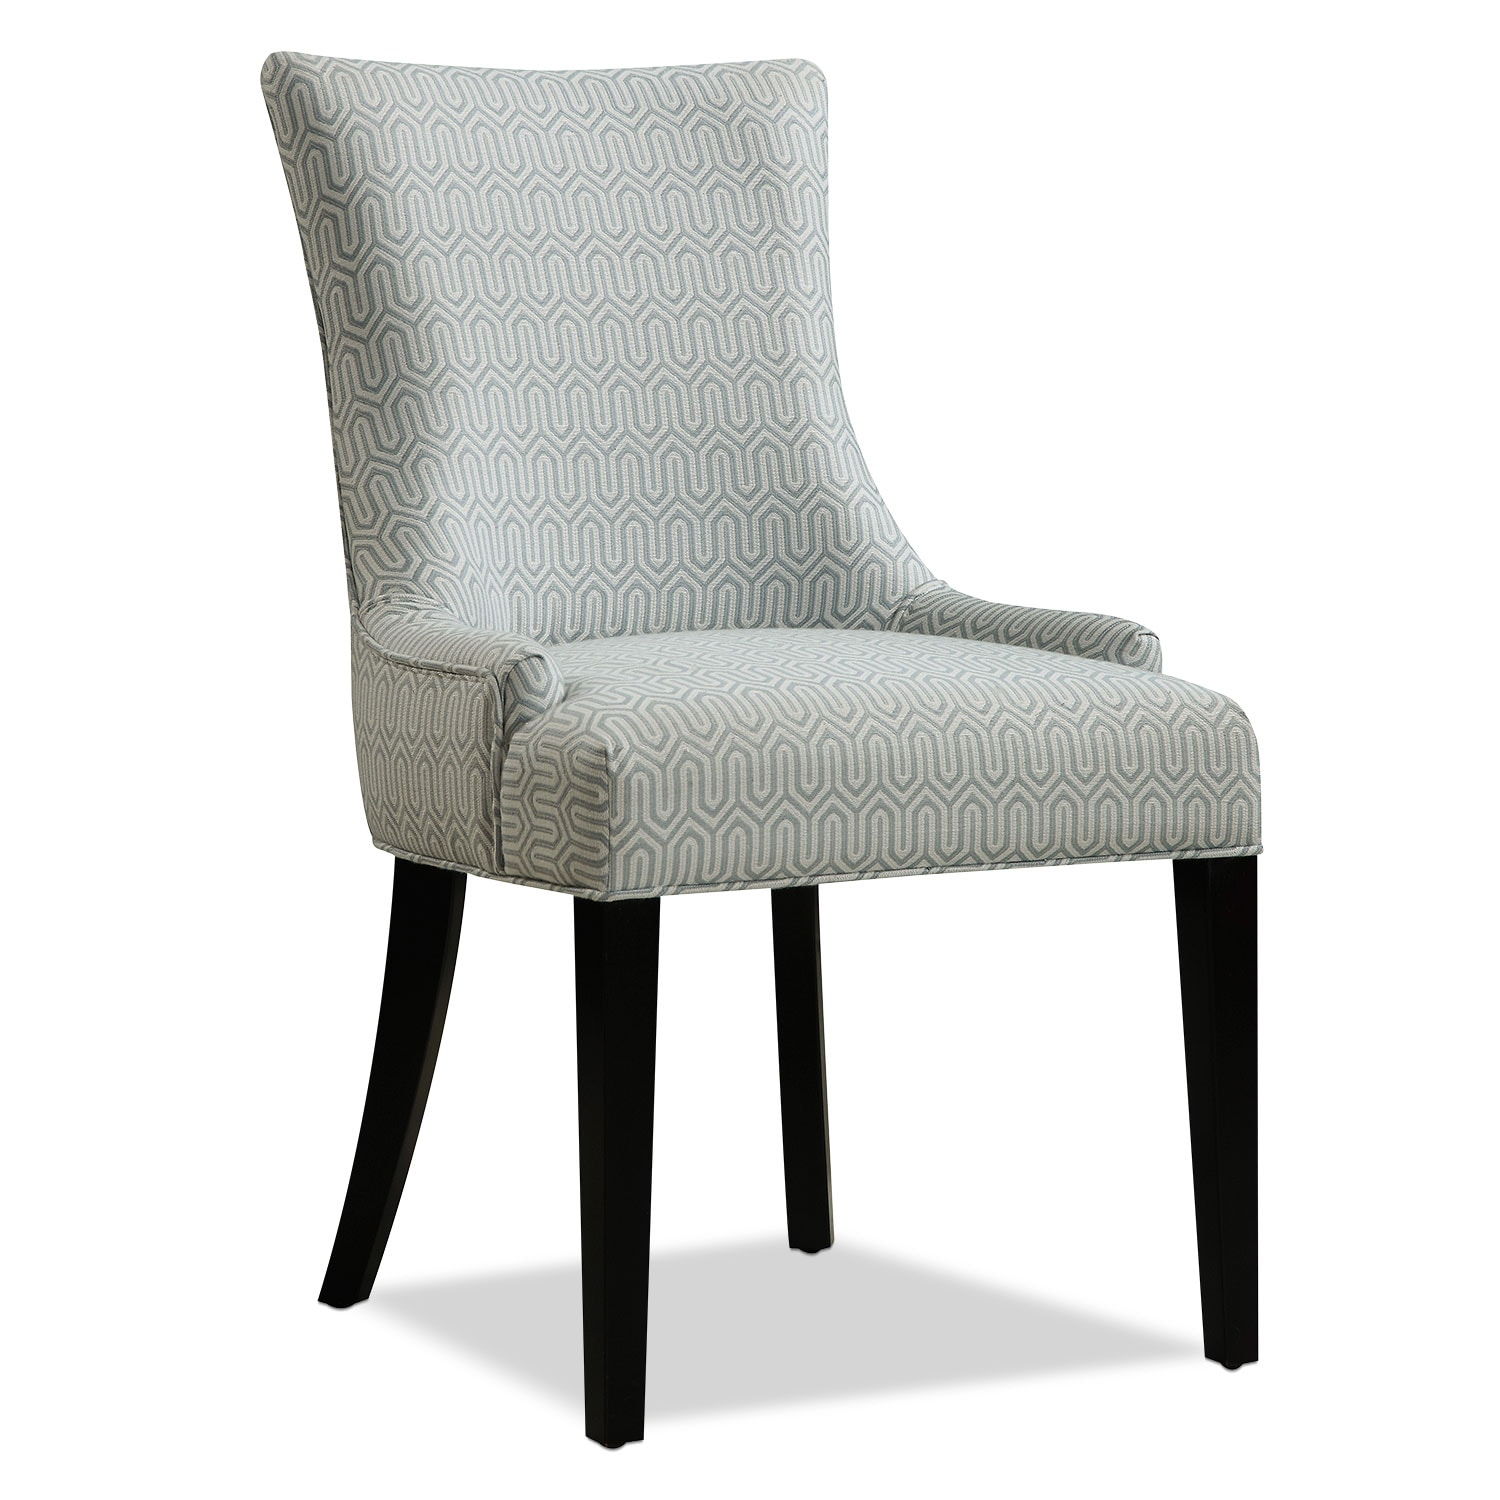 Living Room Furniture - Farren Accent Chair - Mist